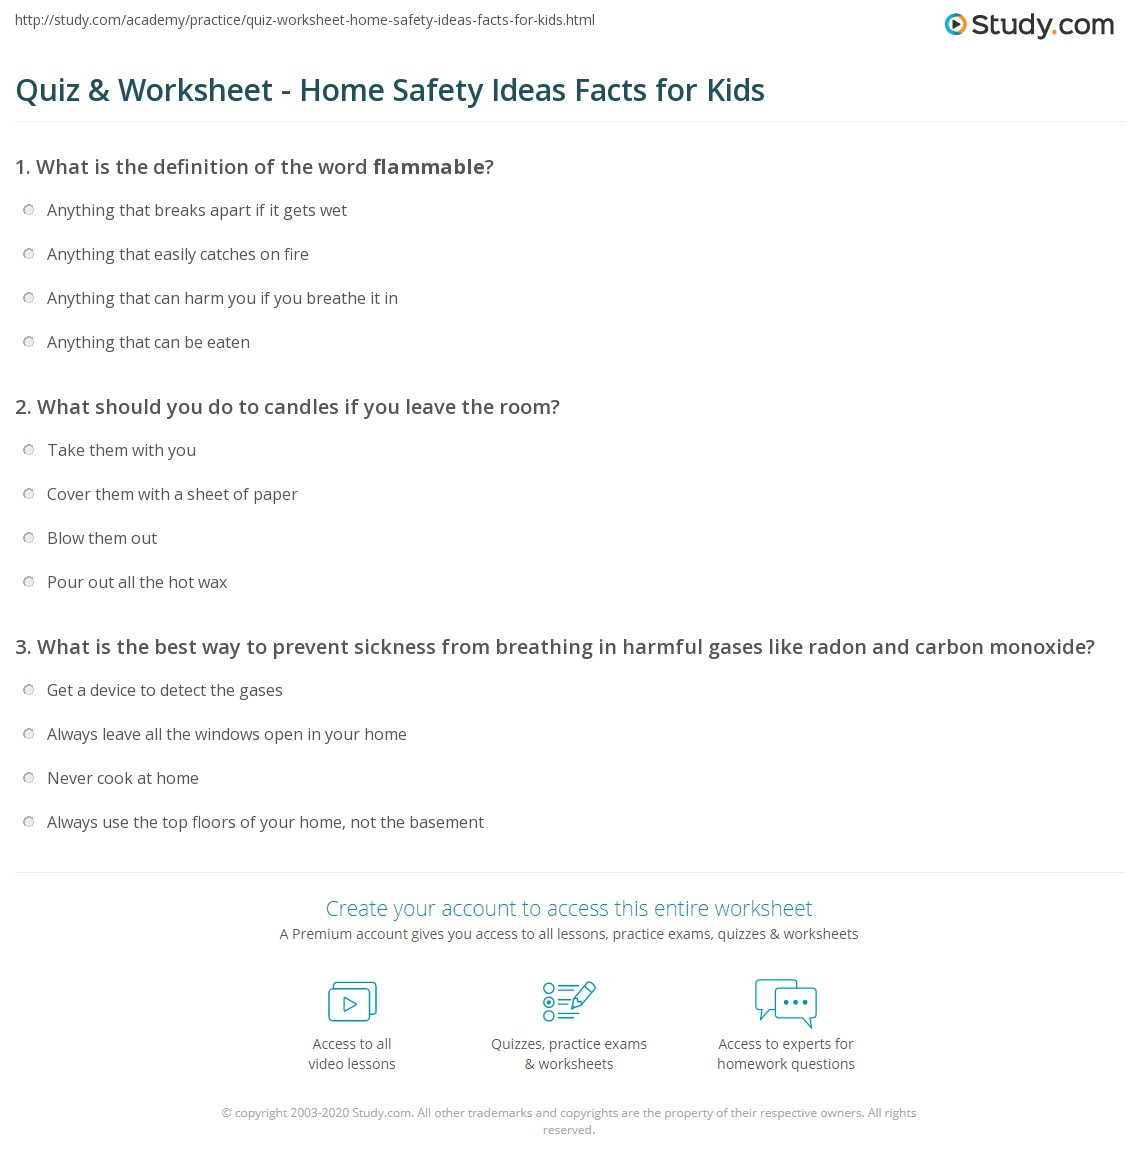 Quiz & Worksheet - Home Safety Ideas Facts for Kids | Study.com